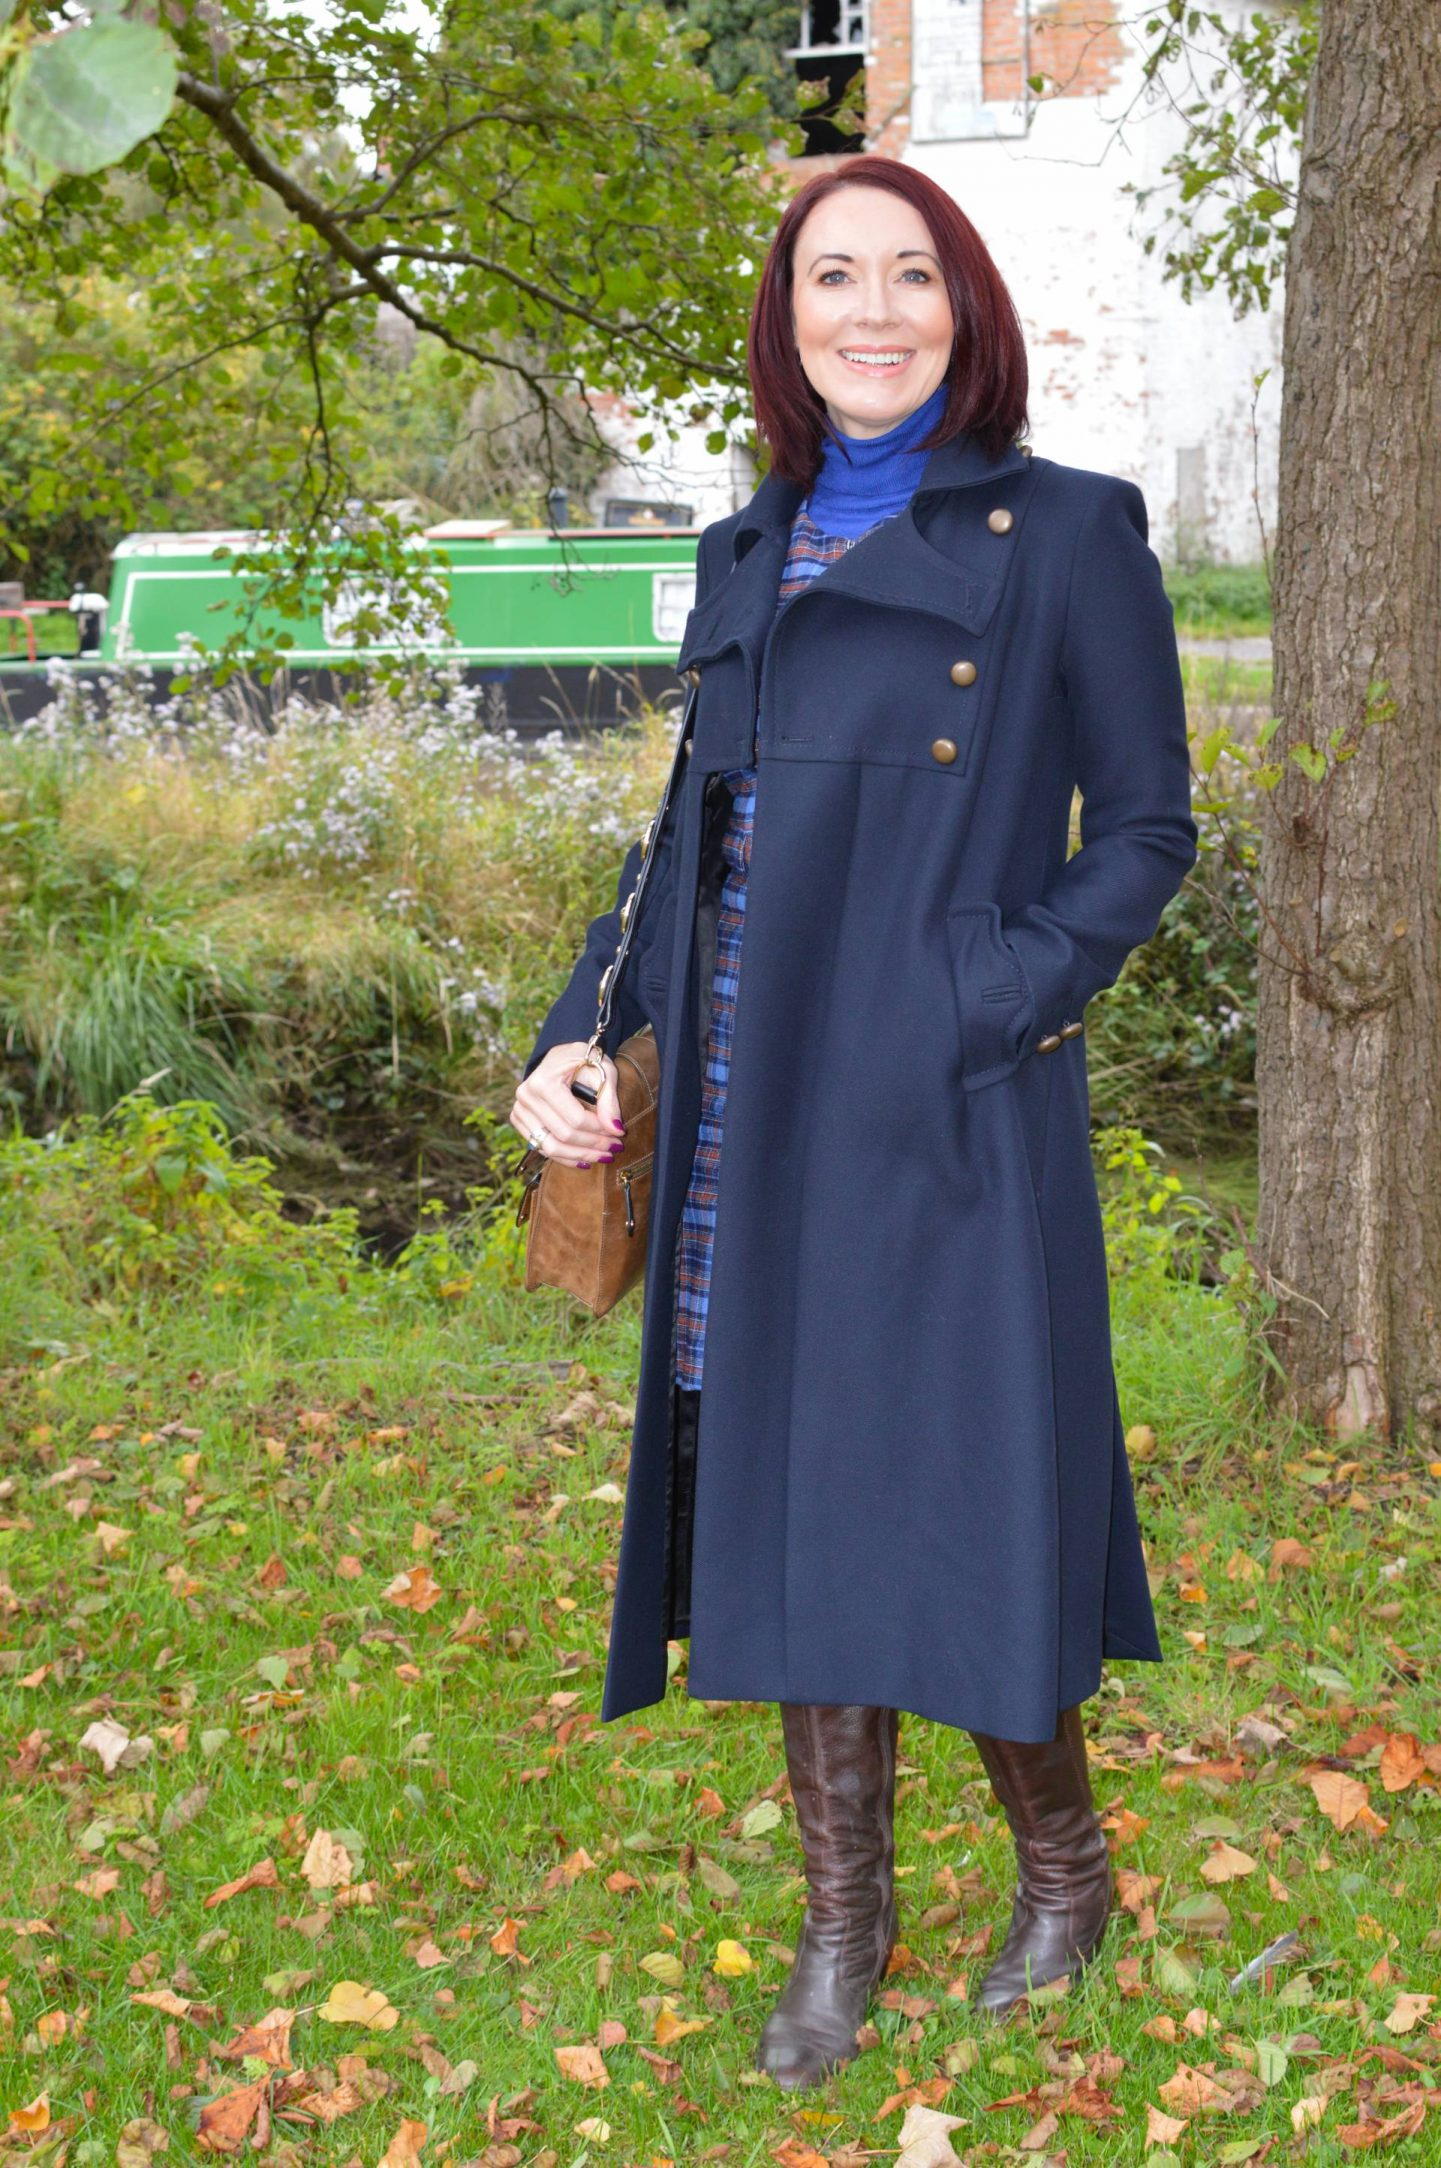 Check Out Preloved Fashion - The Thrifty Six October Challenge,, French Connection navy military coat